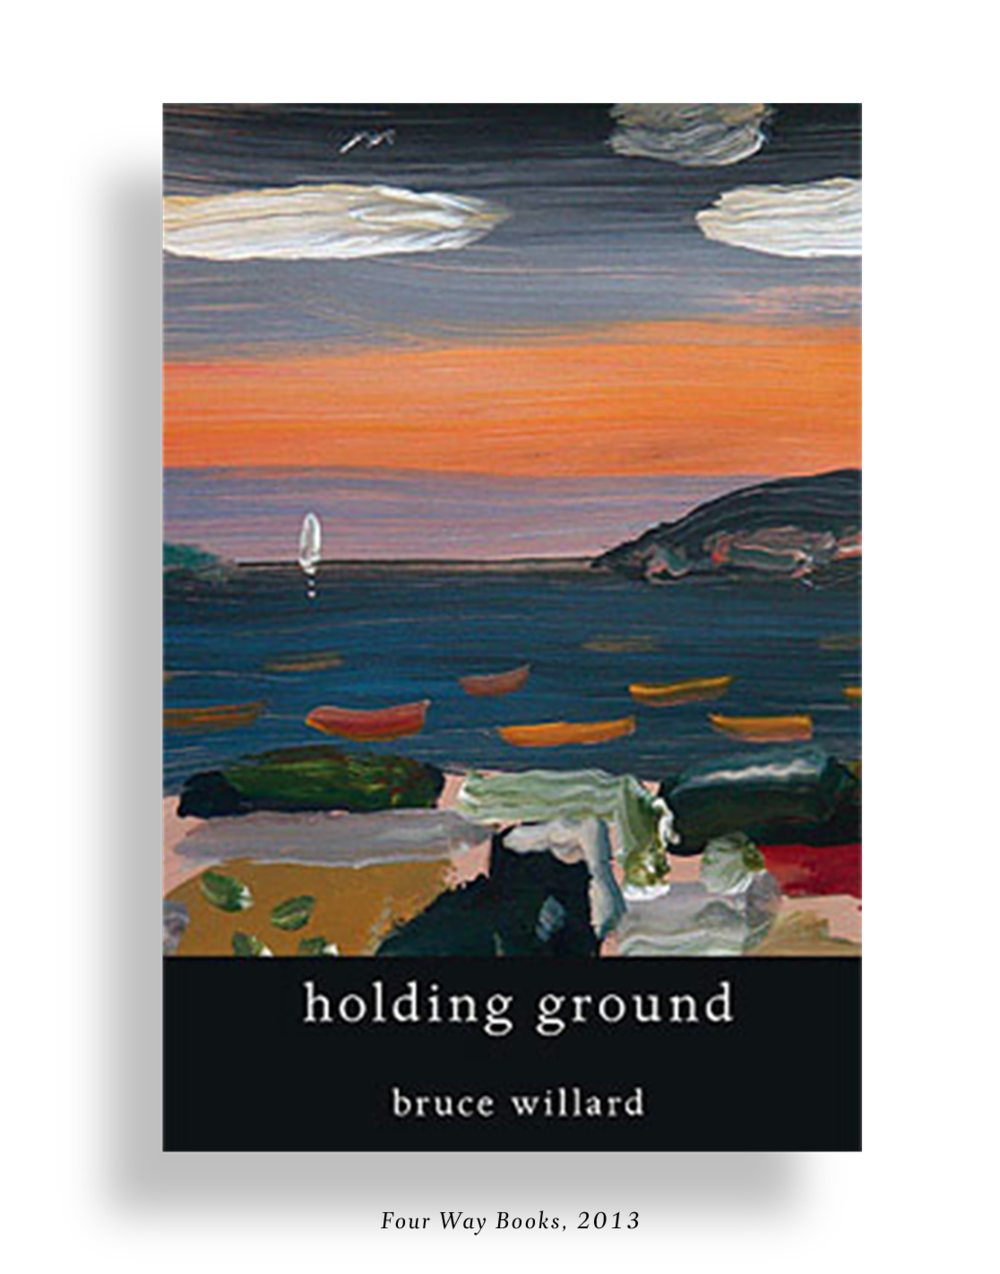 holding_ground_cover_white_bg_2013.png